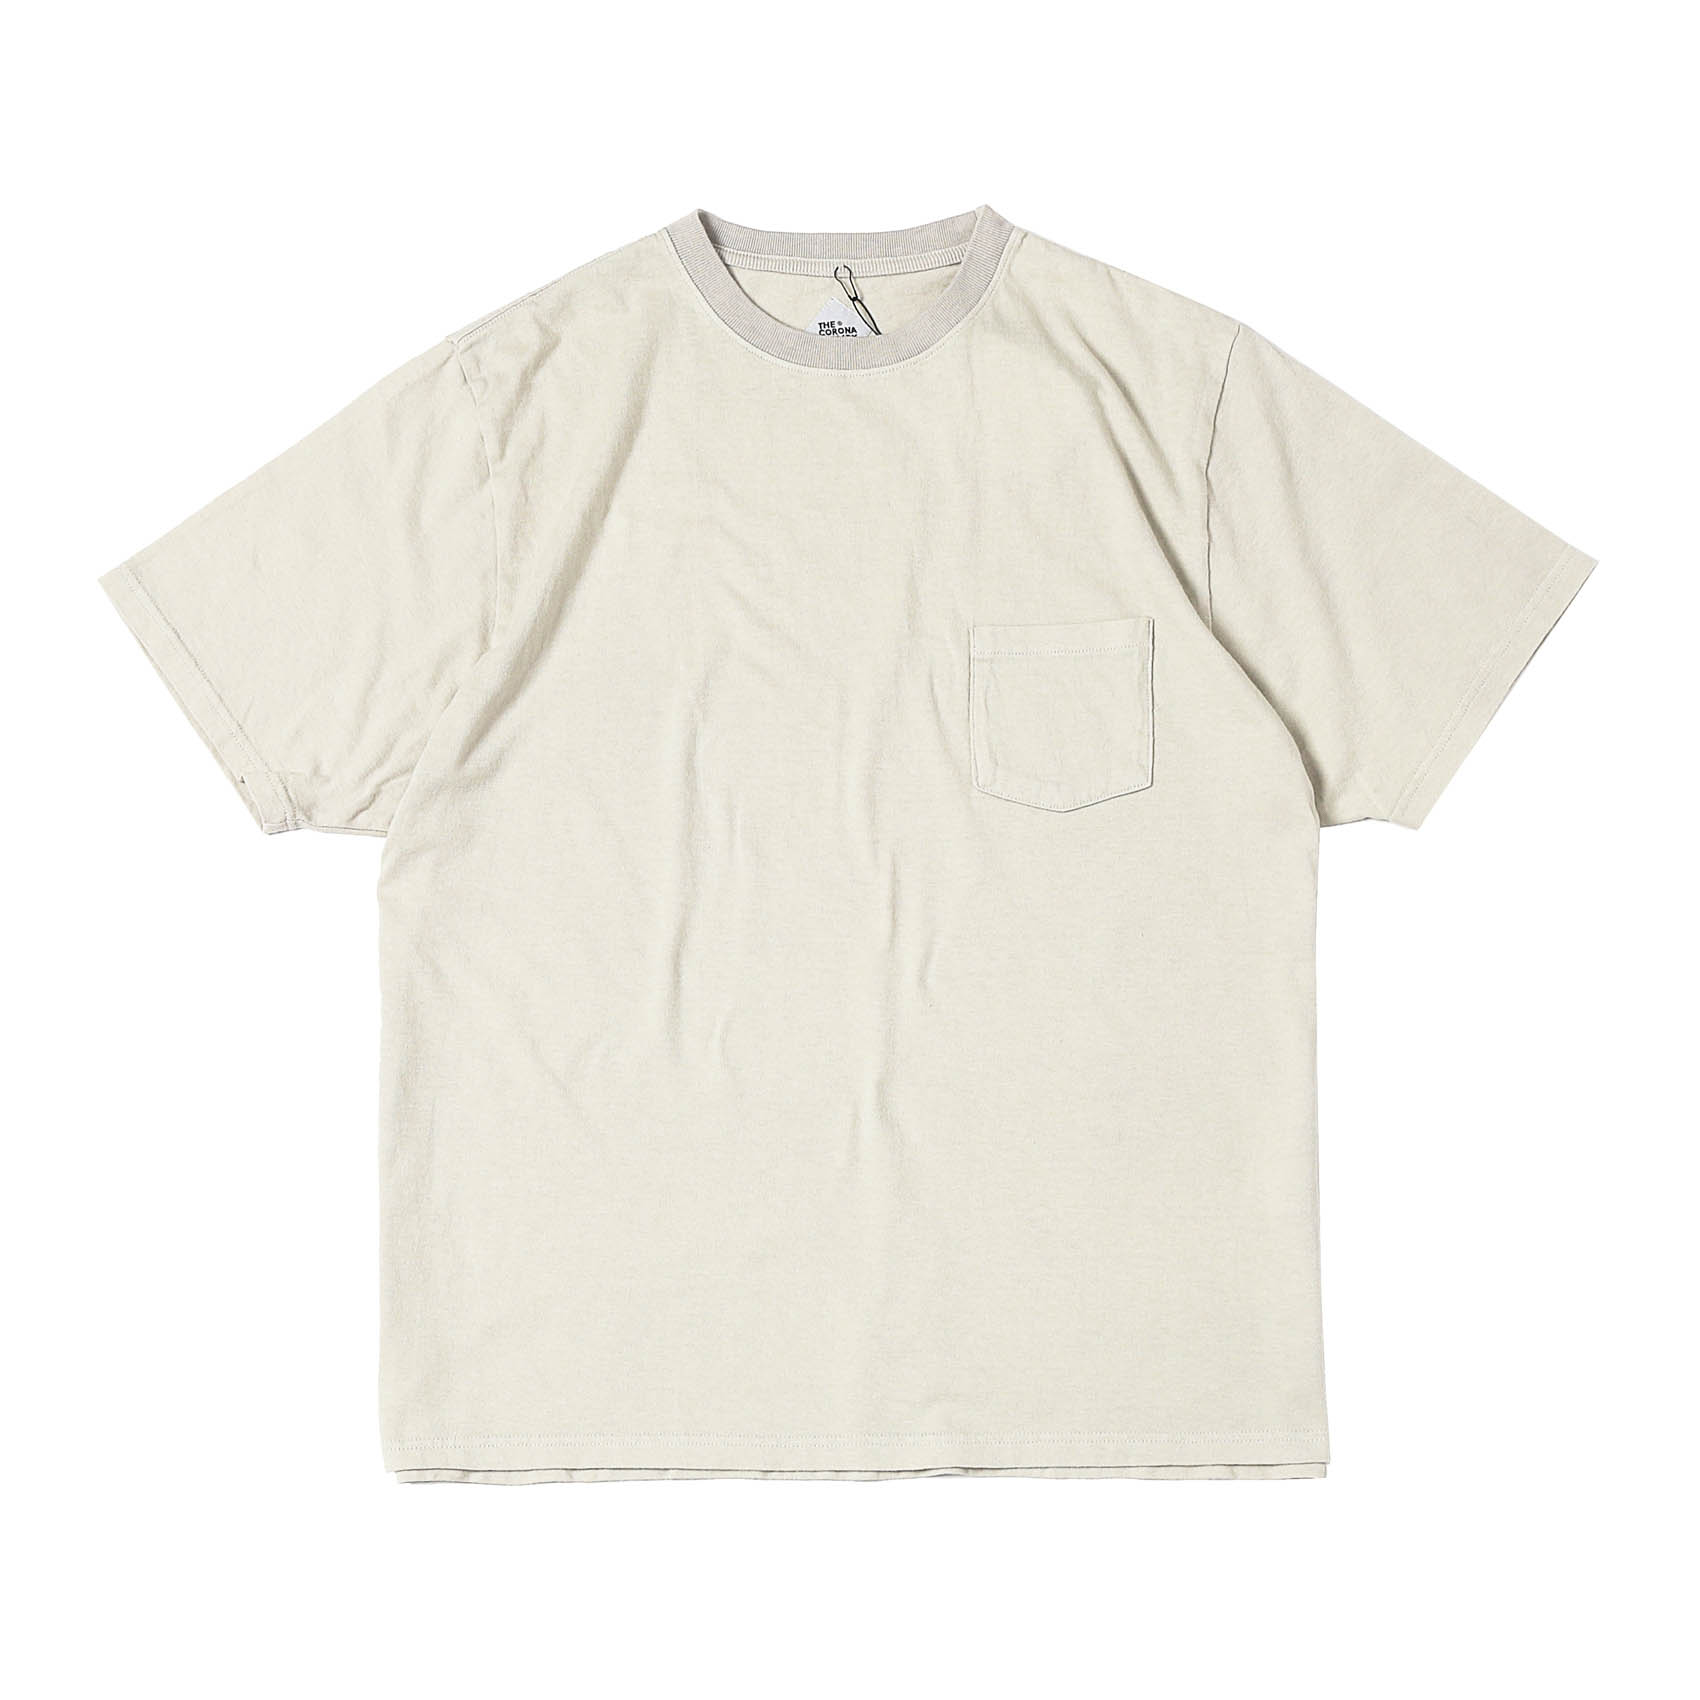 BASIC POCKET TEE - OFF WHITE